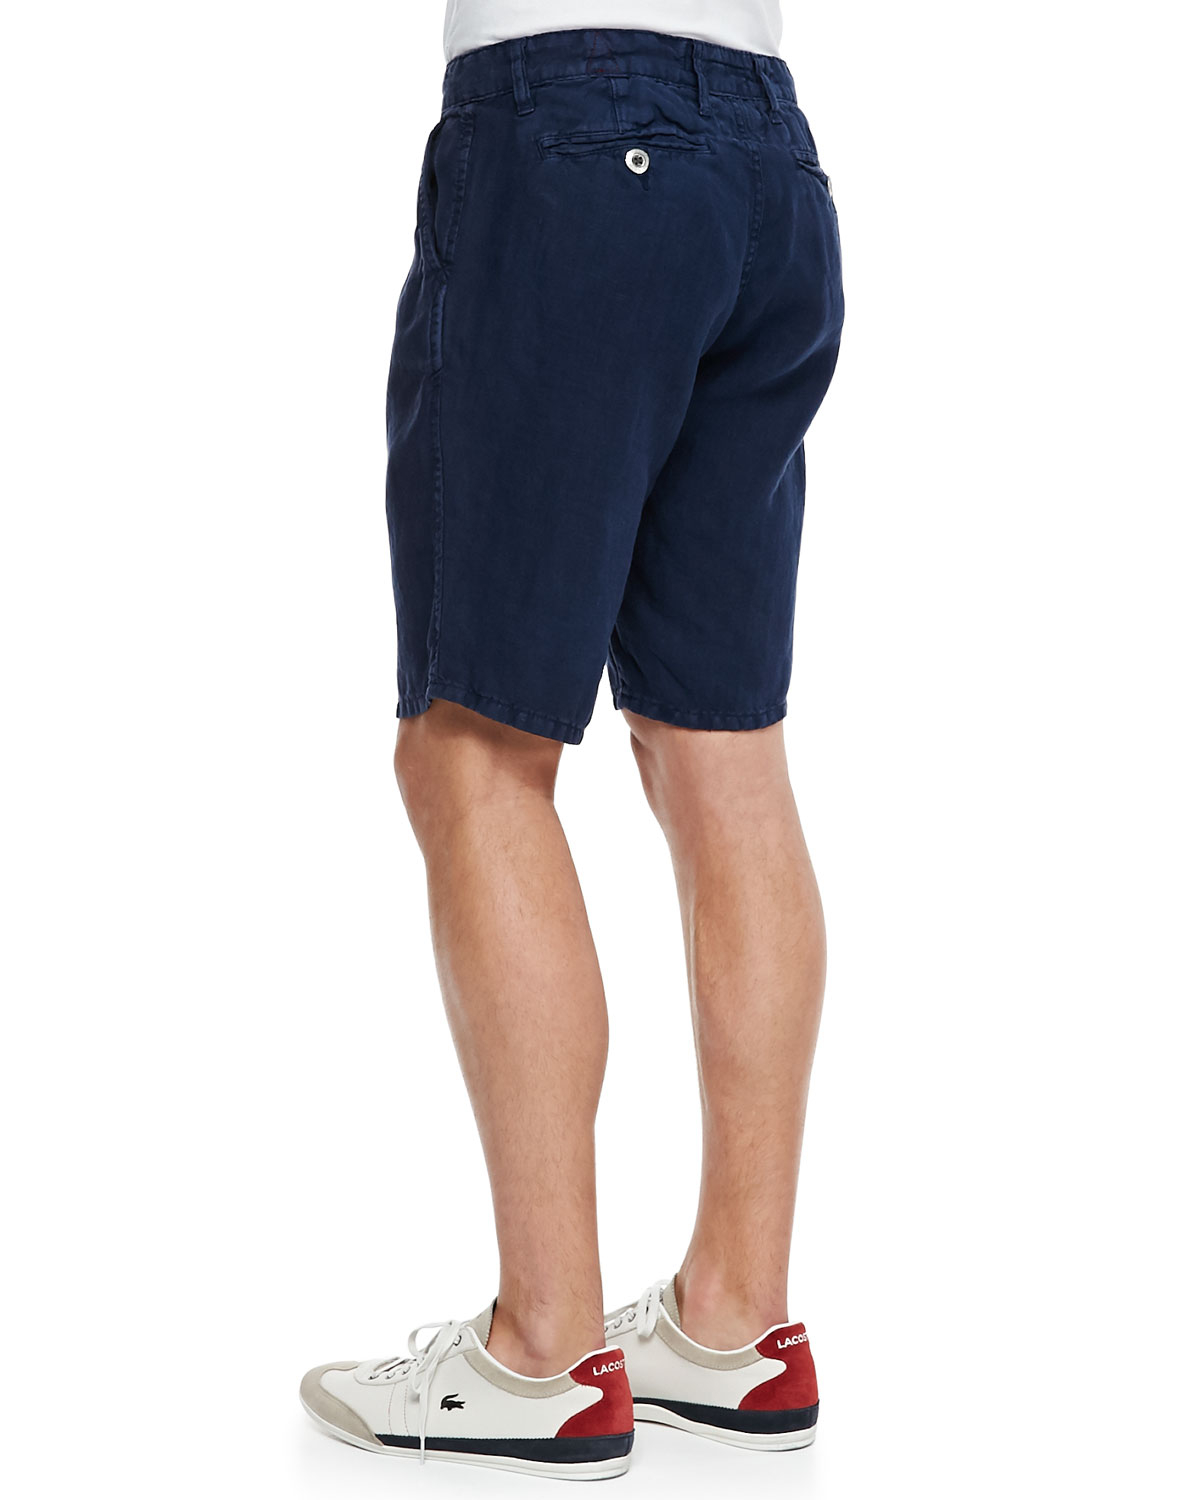 Navy Blue Linen Shorts Hardon Clothes